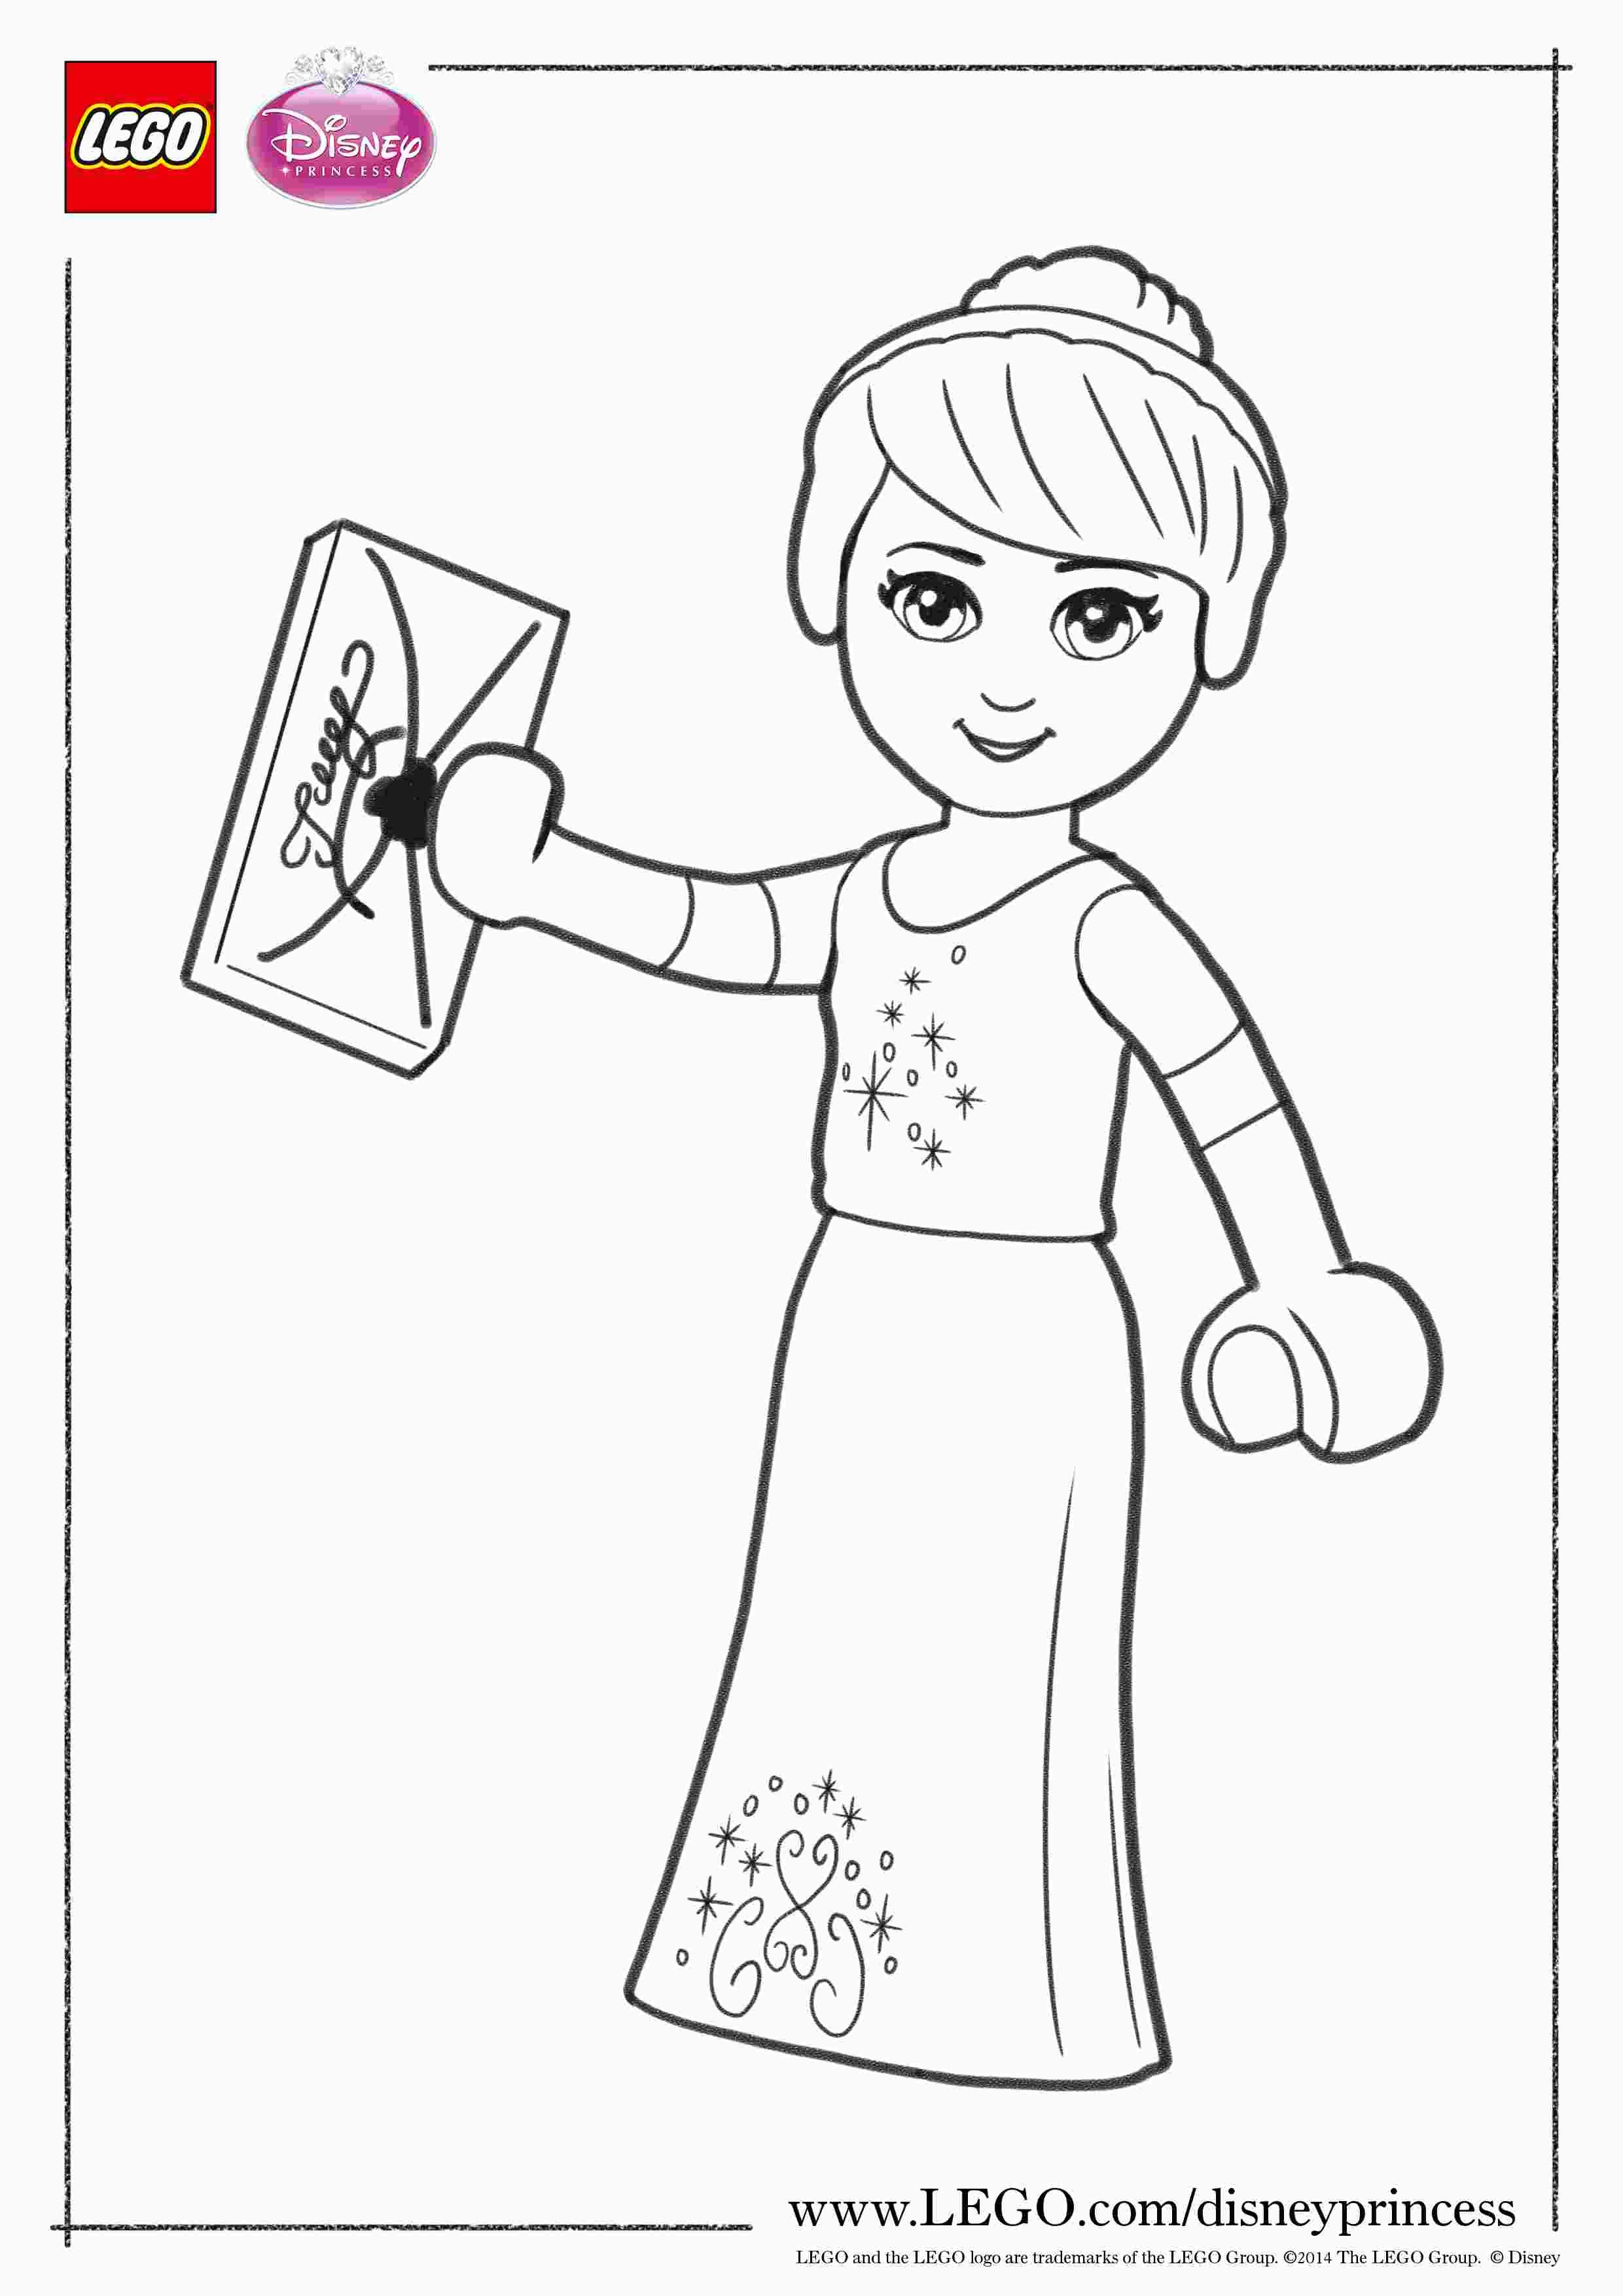 Lego Disney Princess Coloring Pages Lego Kleurplaten Prinses Kleurplaatjes Disney Prinsessen